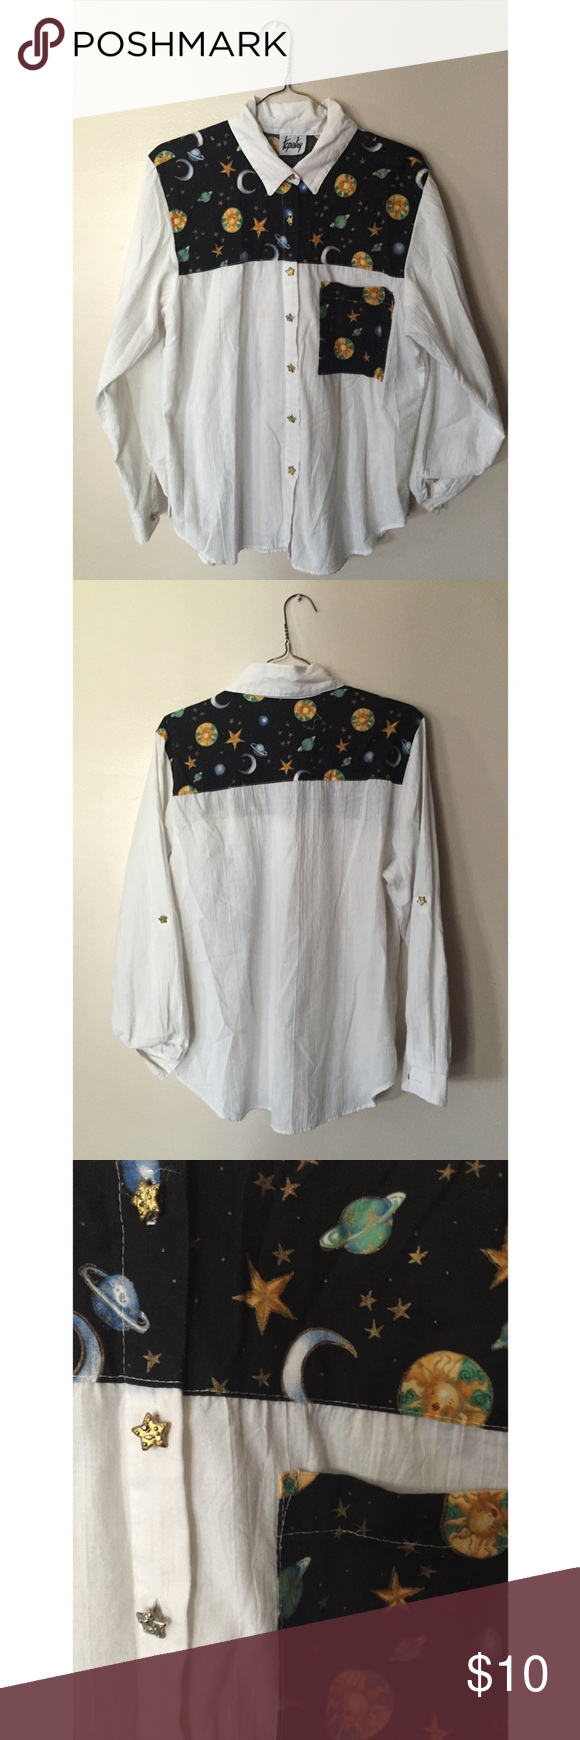 Vintage Space Sun and Stars Button Up Cute vintage outer space pattern with the sun and galaxies. The buttons dare stars and its in good shape. Fits a medium/ large. Let me know if you have any questions! 😊 Vintage Tops Button Down Shirts